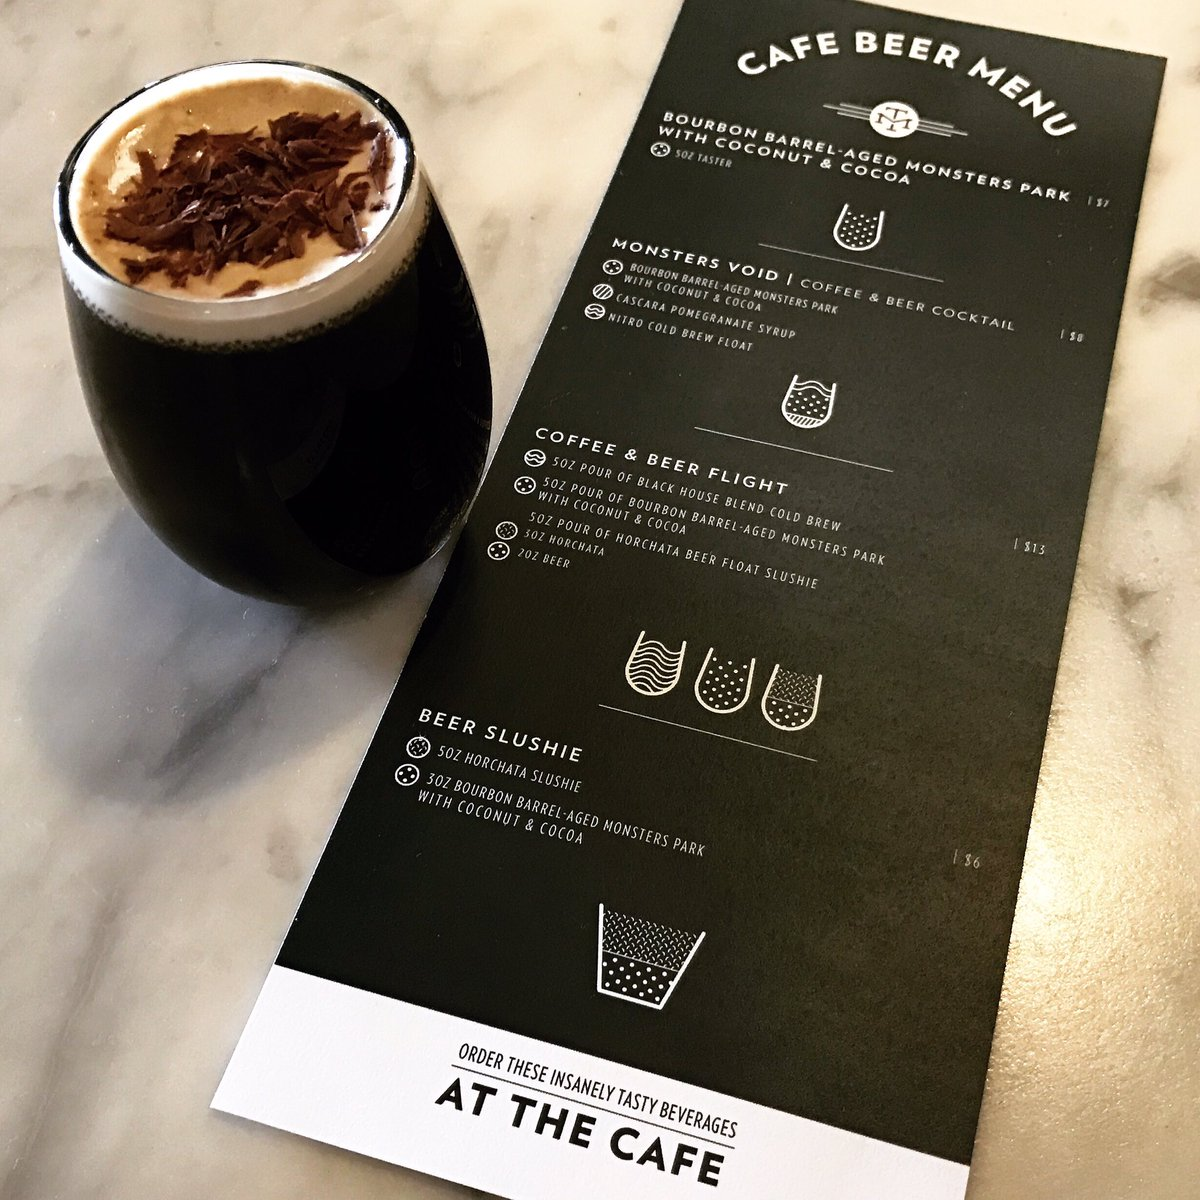 BBA Monsters' Park w/ Coconut & Cocoa, cascara pomegranate syrup, & a nitro cold  brew float… https://t.co/oXXv2rJpxe